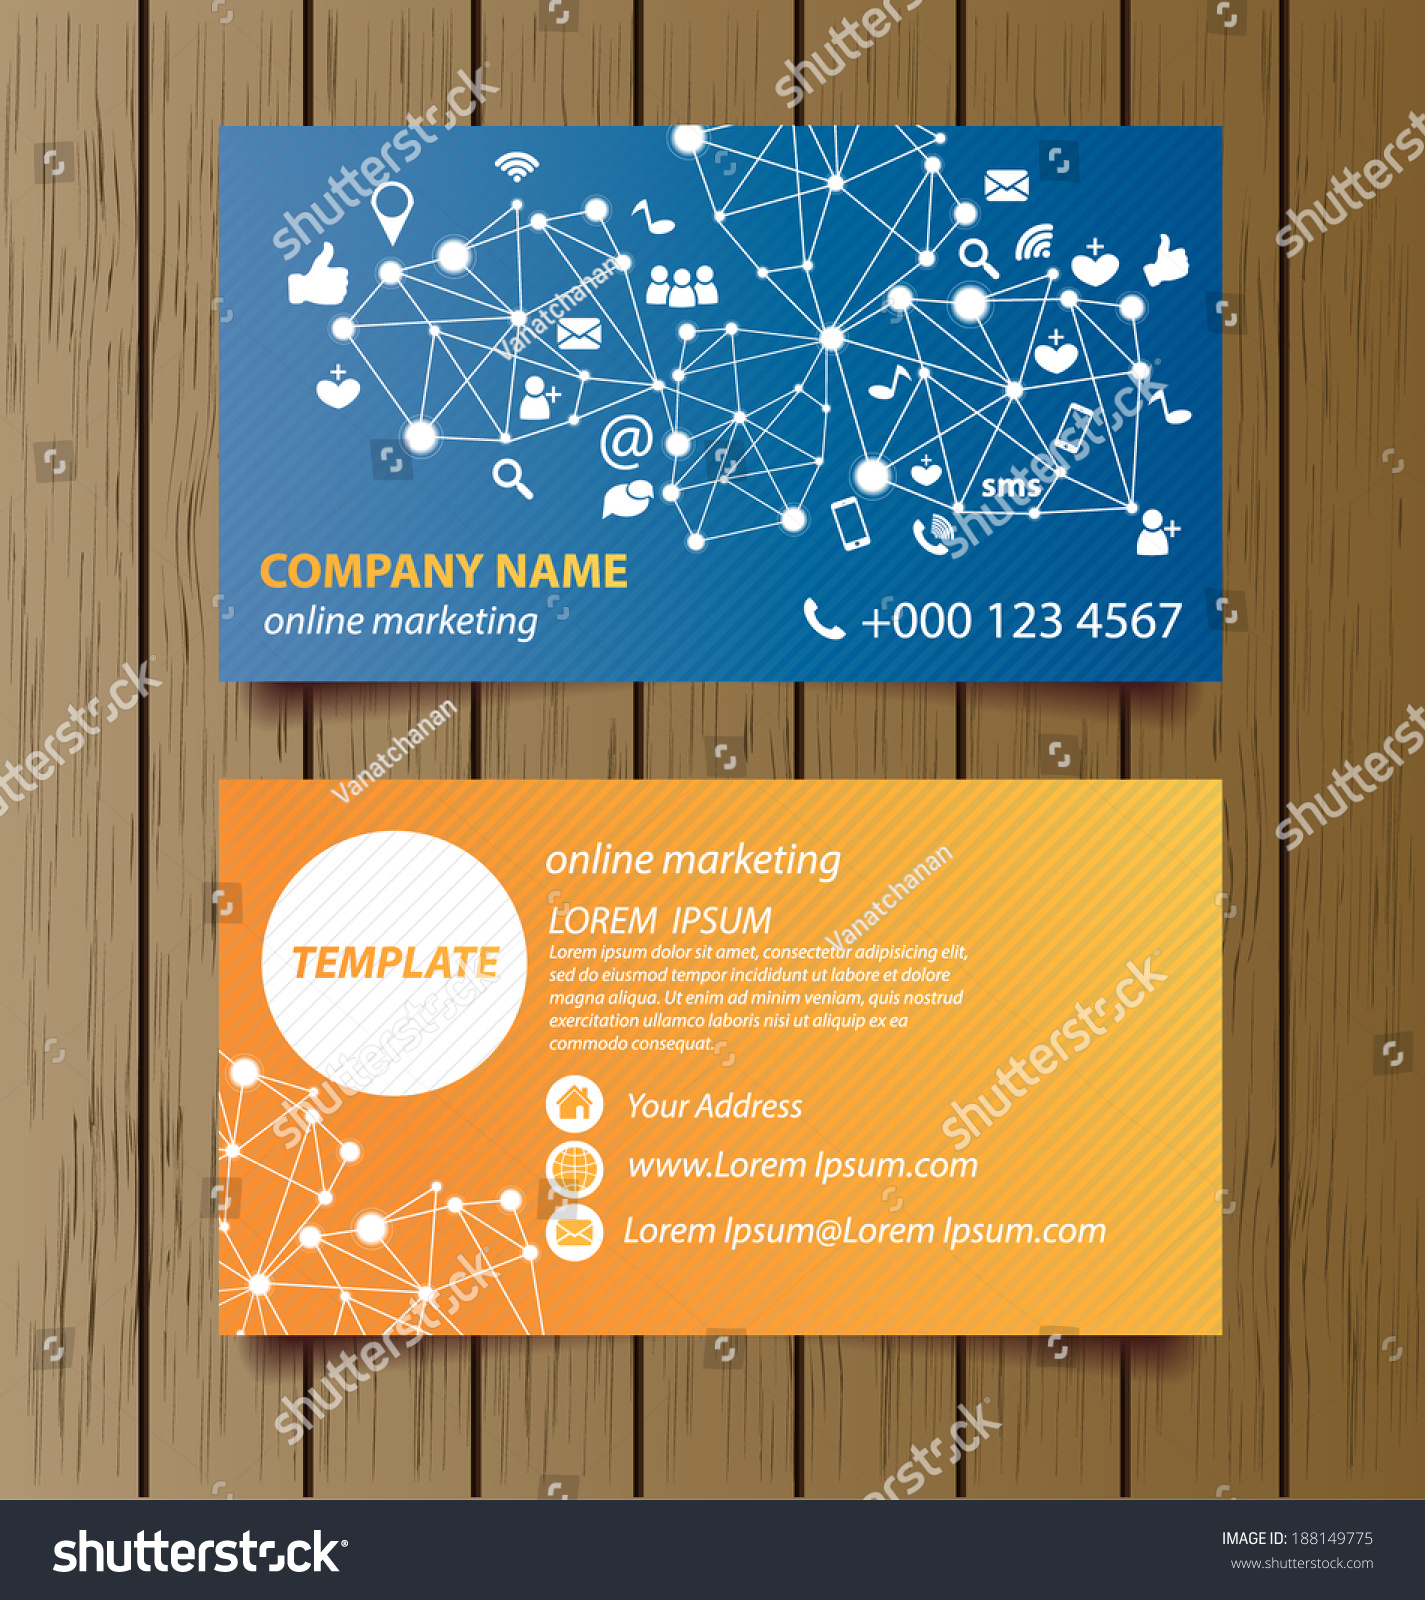 Business card template online marketing vector stock vector business card template for online marketing vector illustration colourmoves